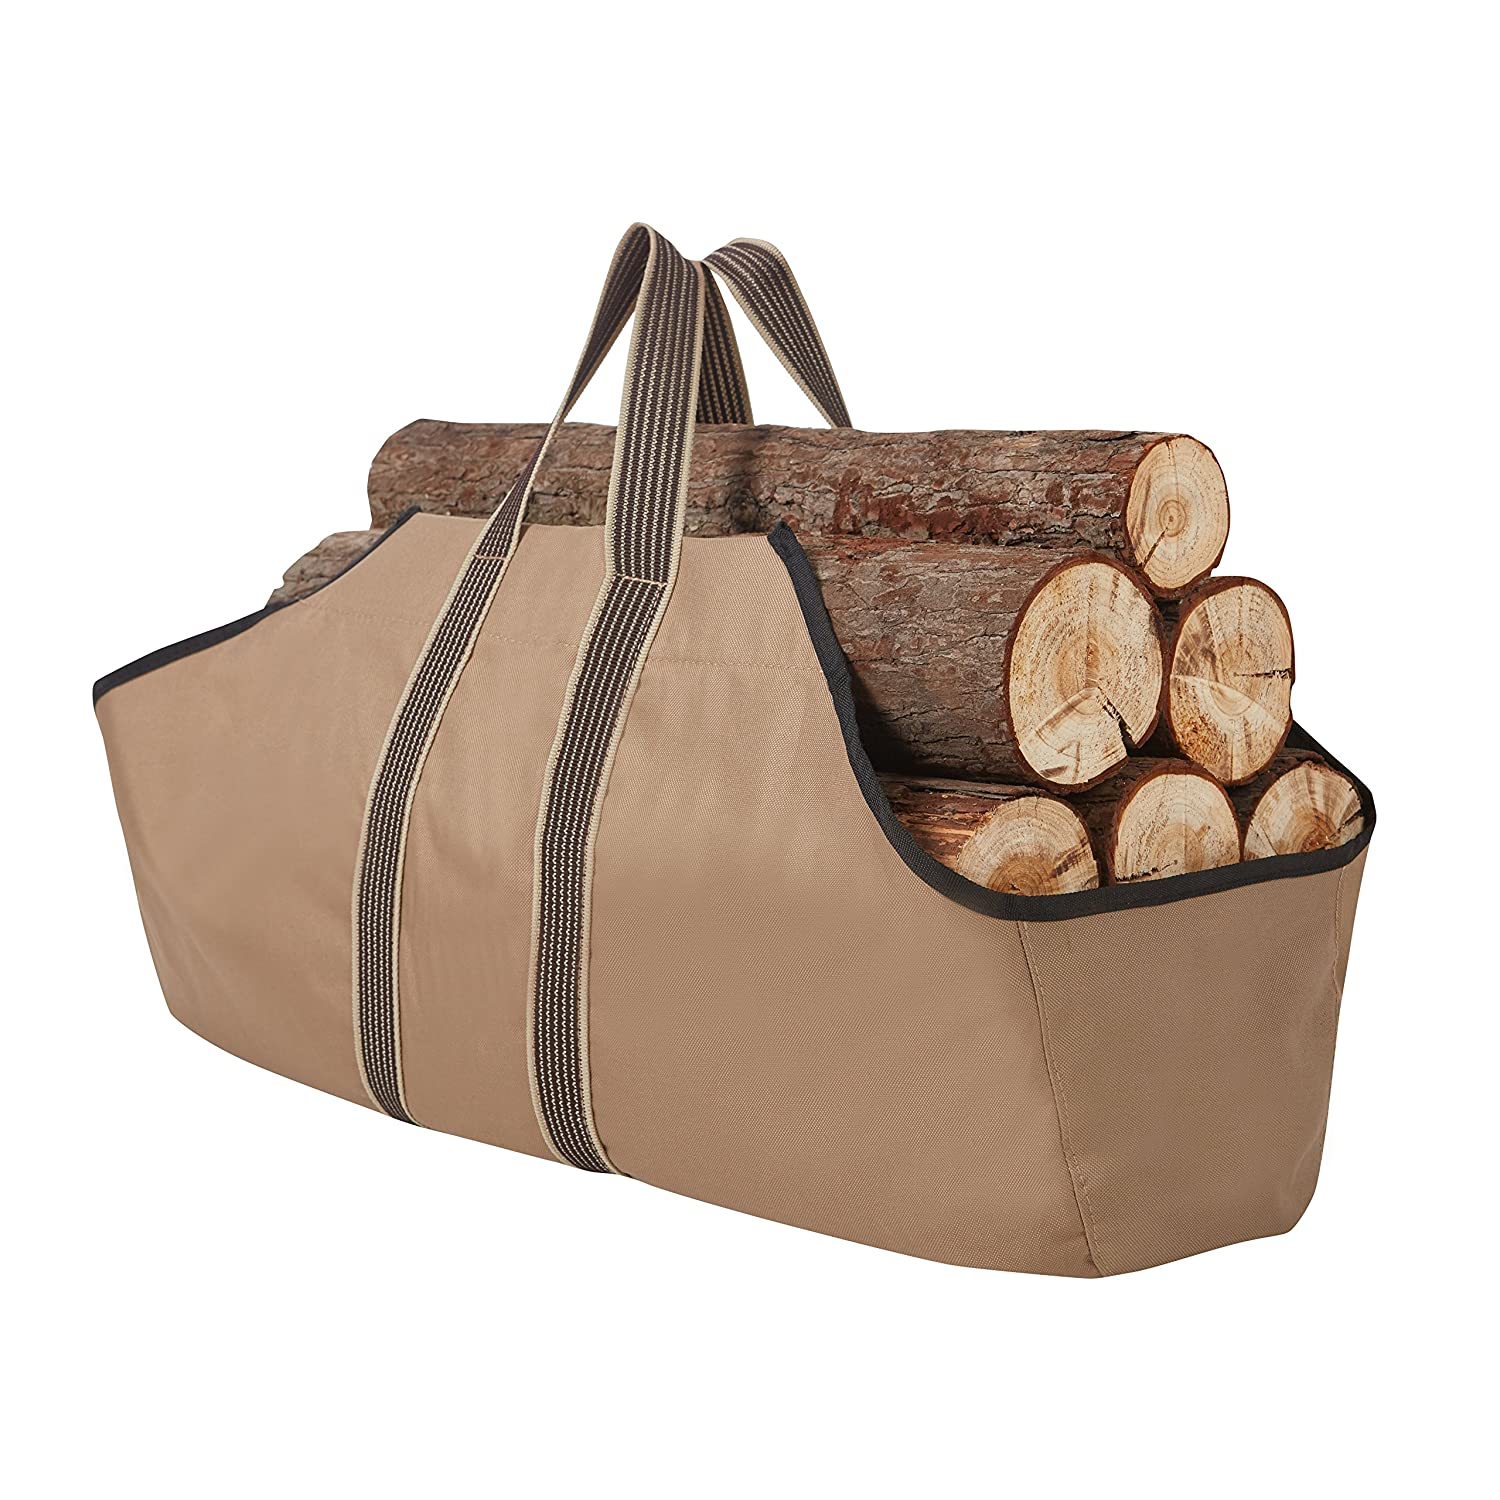 RORAIMA Firewood Log Carrier Signature Log Totes Heavy Duty Canvas (logs not included) size 36'x16'x9' Color Khaki